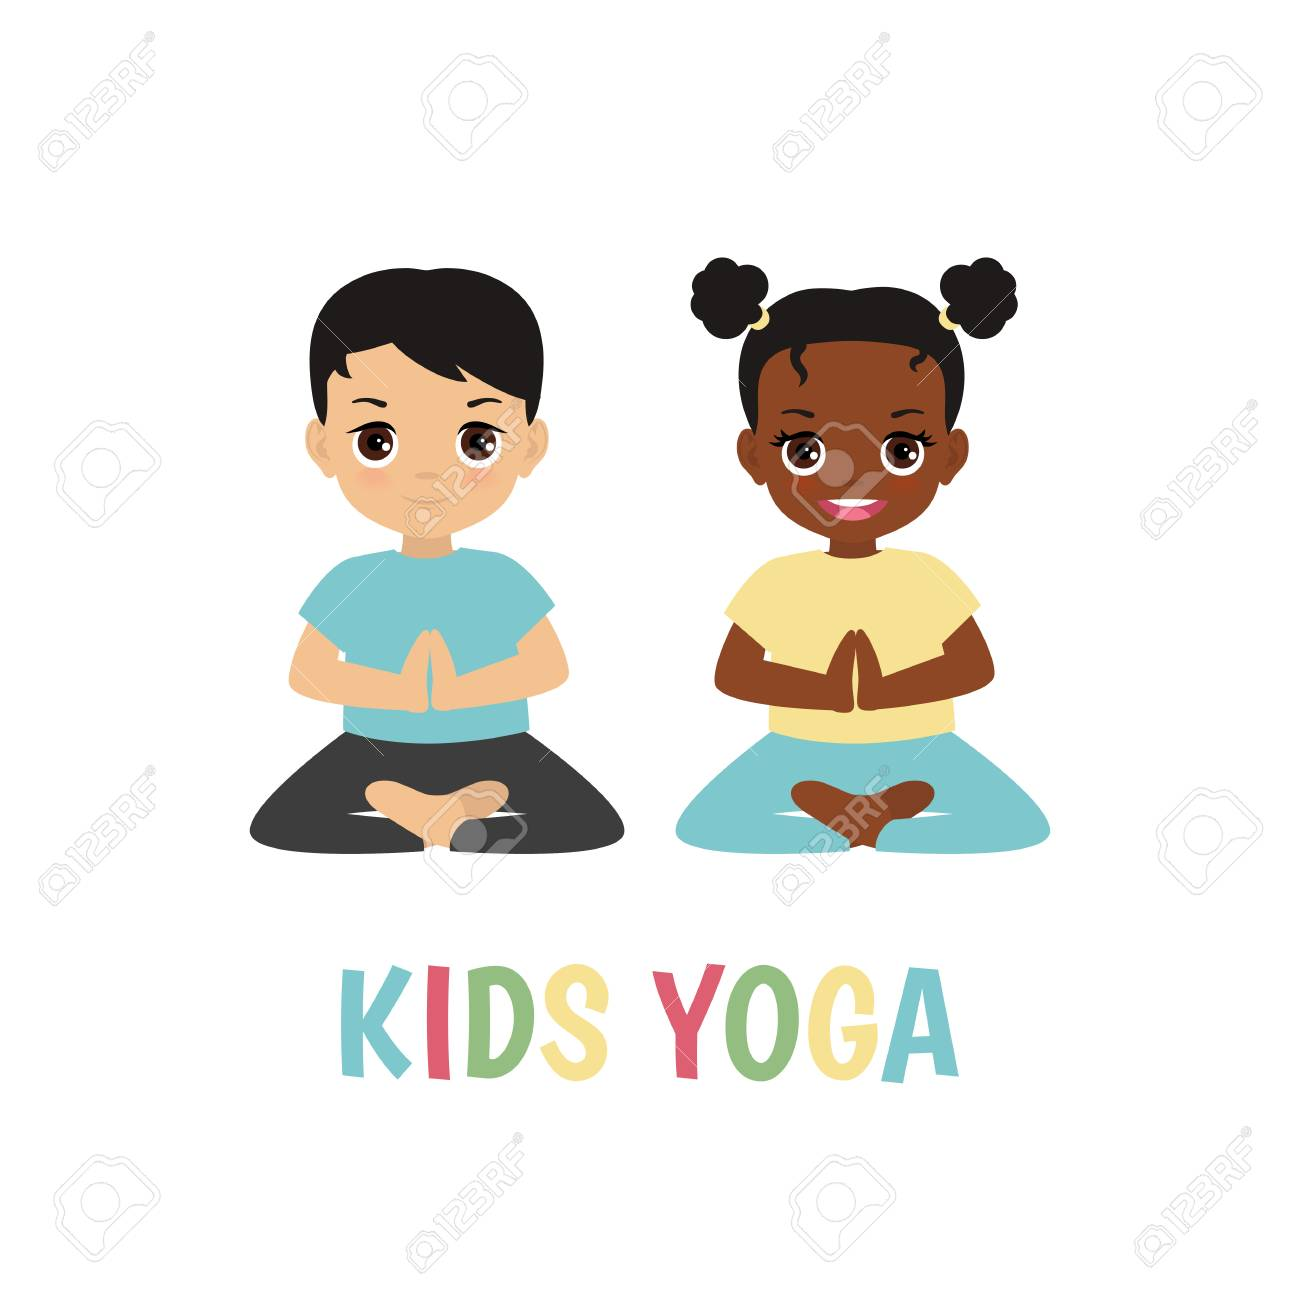 Kids yoga design concept with boy and girl in yoga positions..